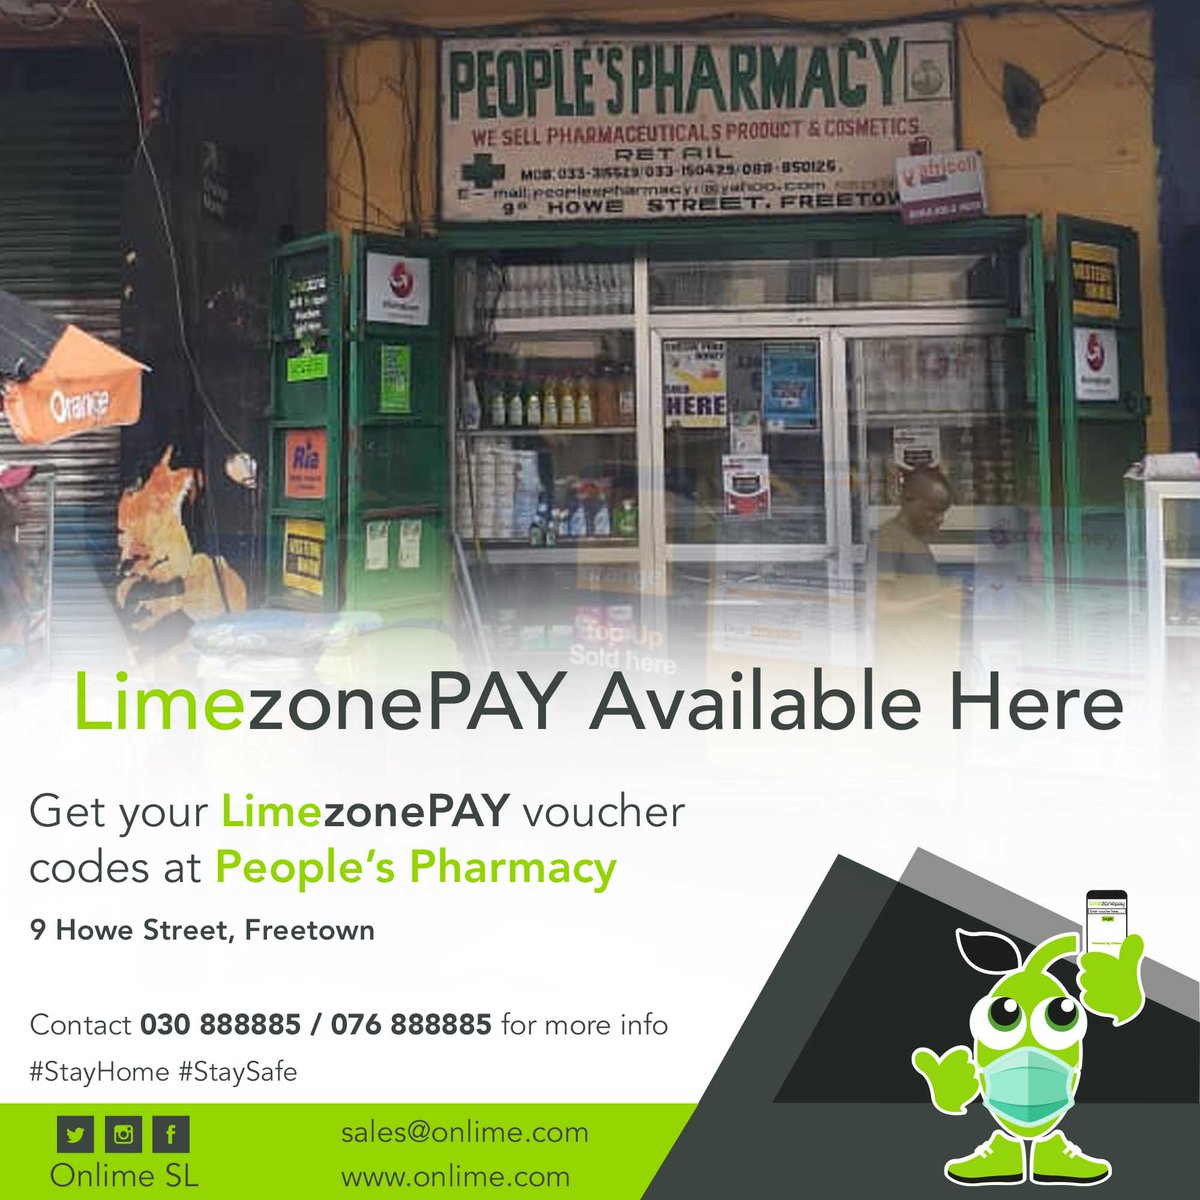 Get your LimezonePAY Voucher codes from People's Pharmacy 9 Howe Street. contact +23230888885 /+23276888885 for more info. #StayConnected #StaySafe #LimezonePAY https://t.co/ydecpJRsJG